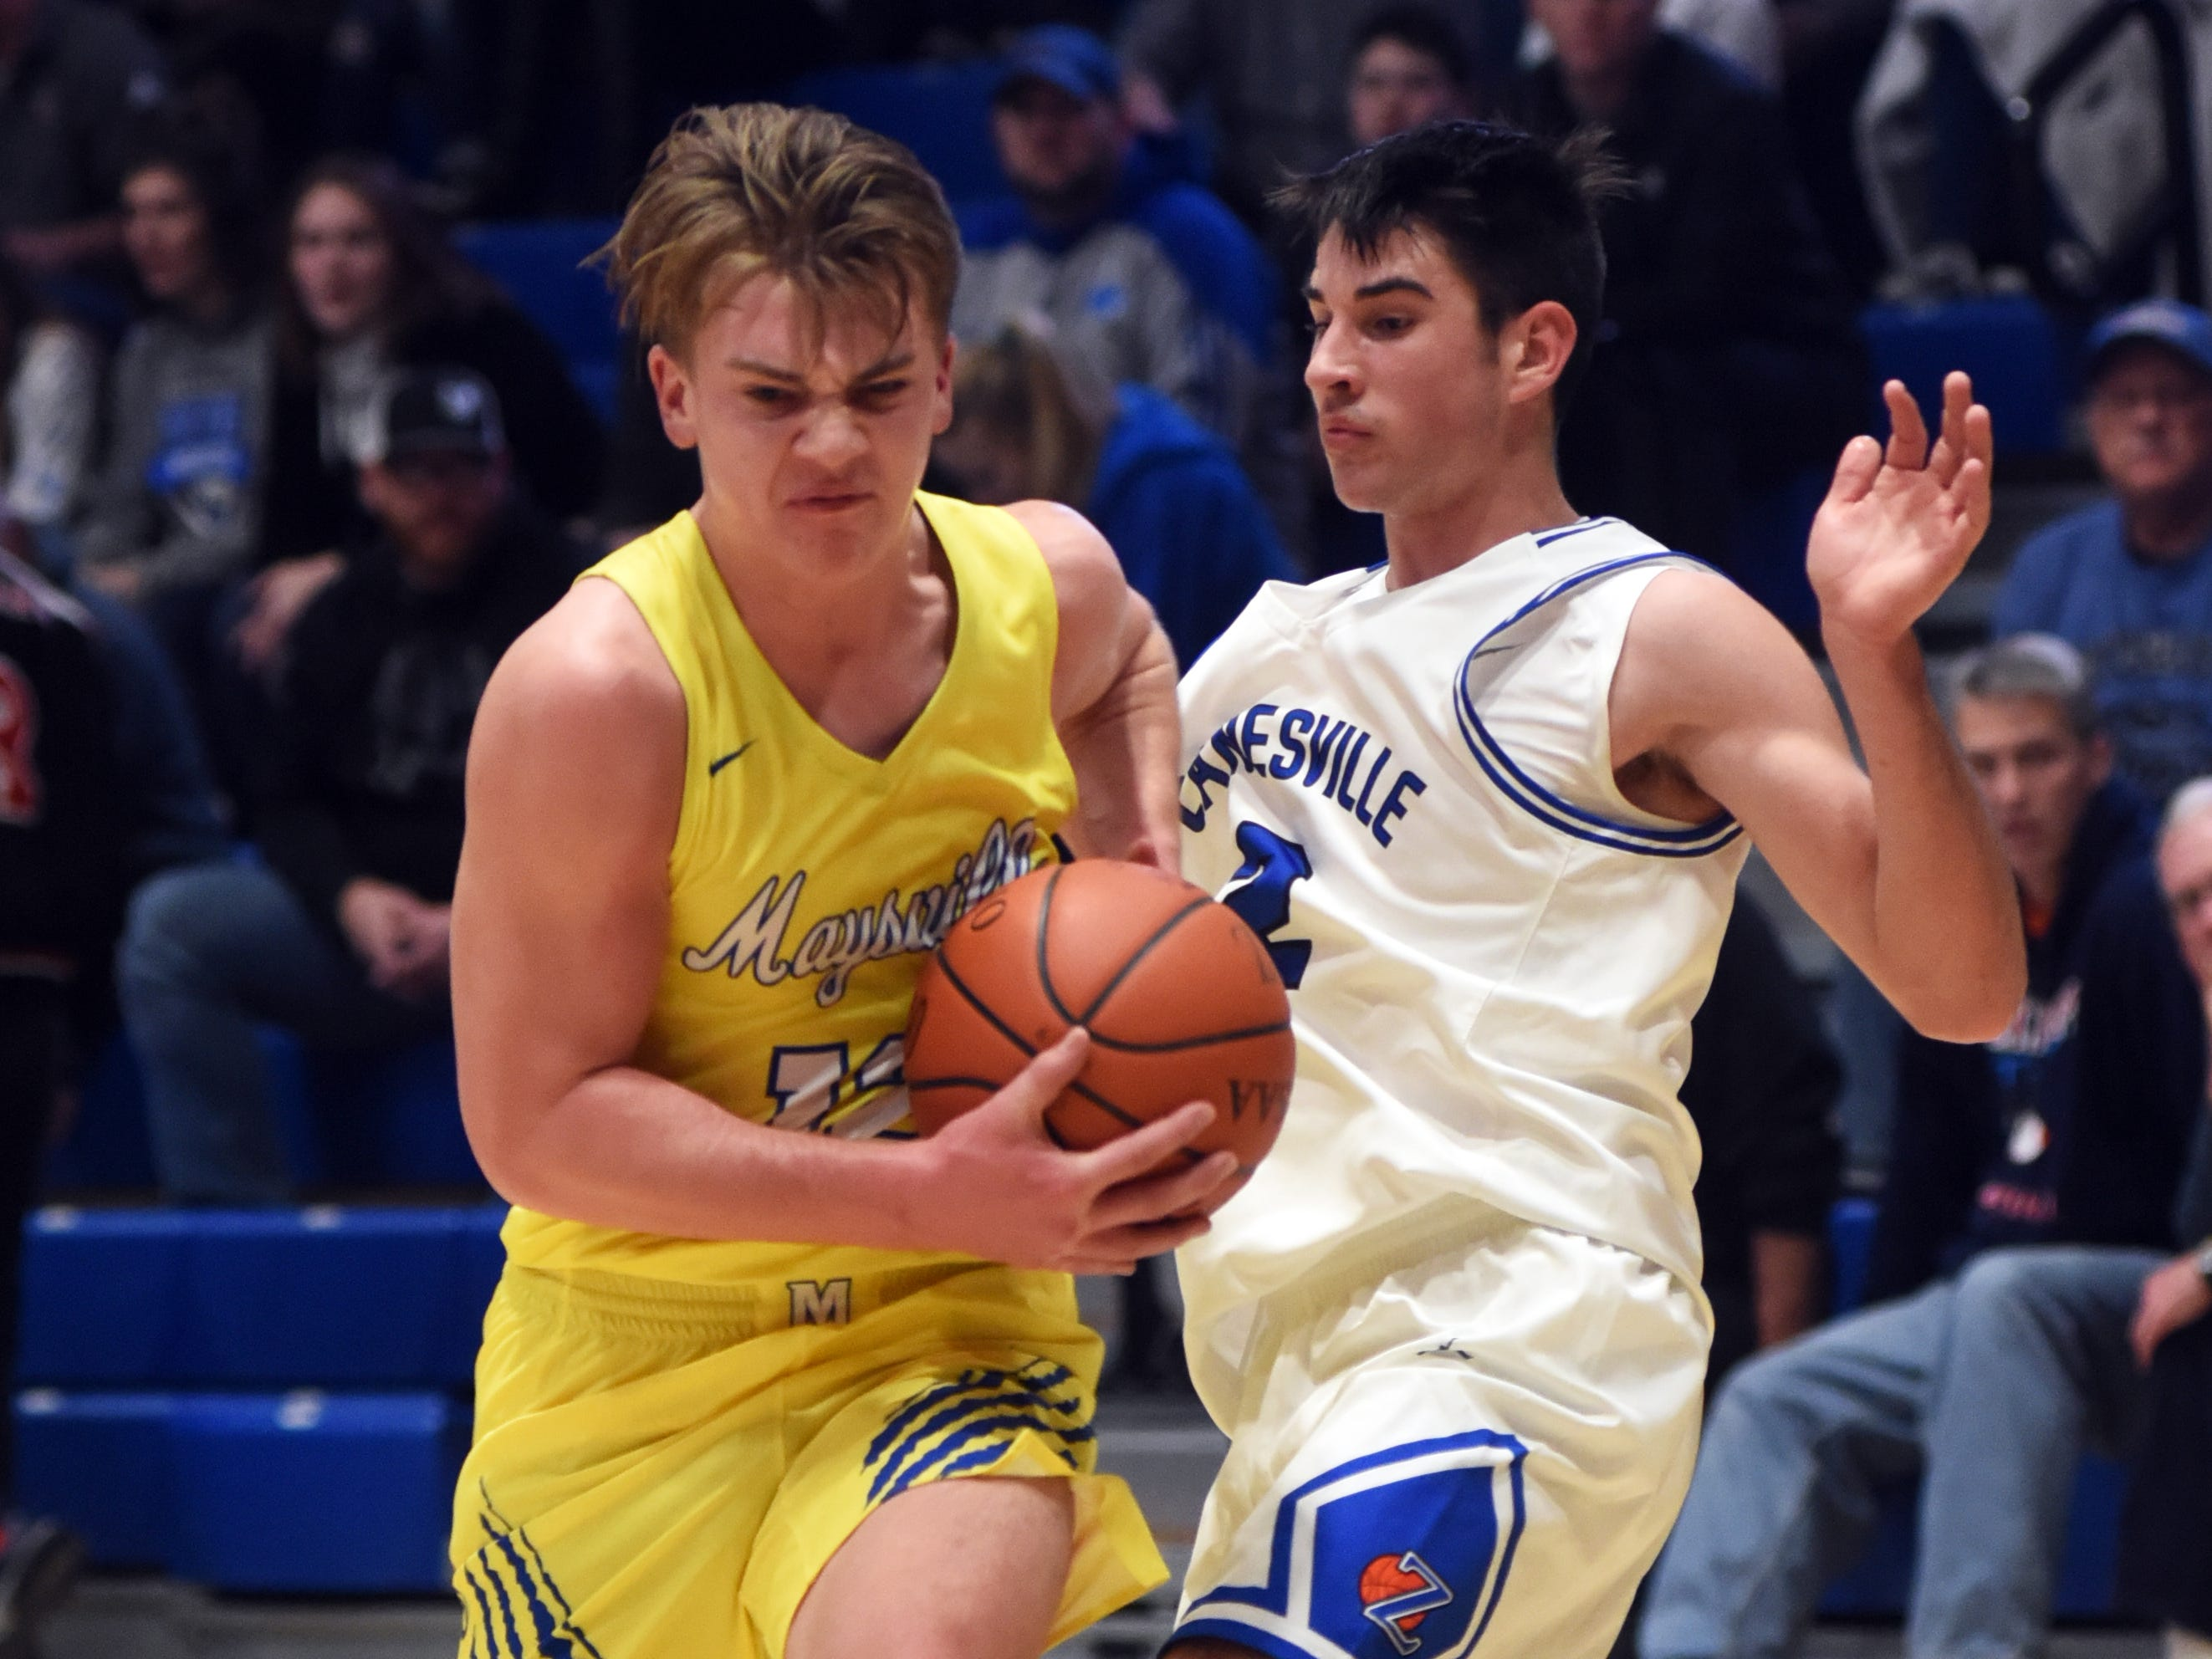 Adam Armstead, of Maysville, muscles into the lane against Zanesville's Avery Parmer.